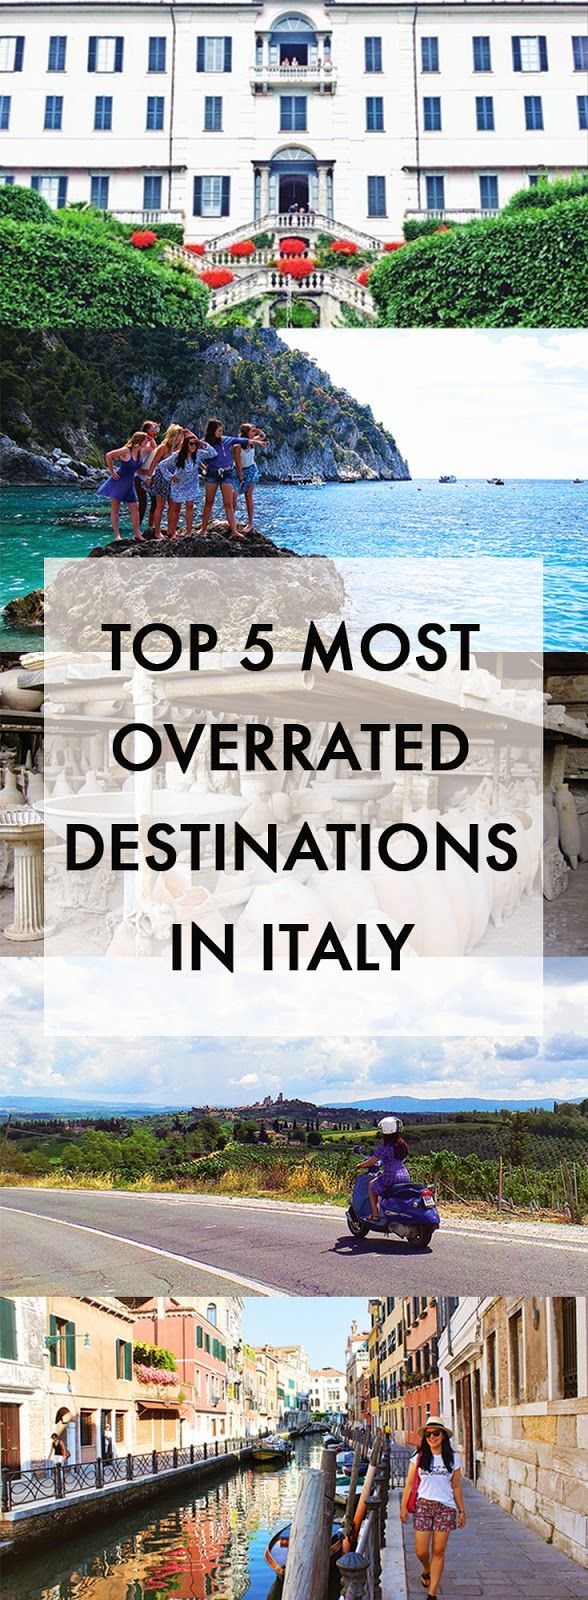 History In High Heels: Top Five Most Overrated Destinations in Italy